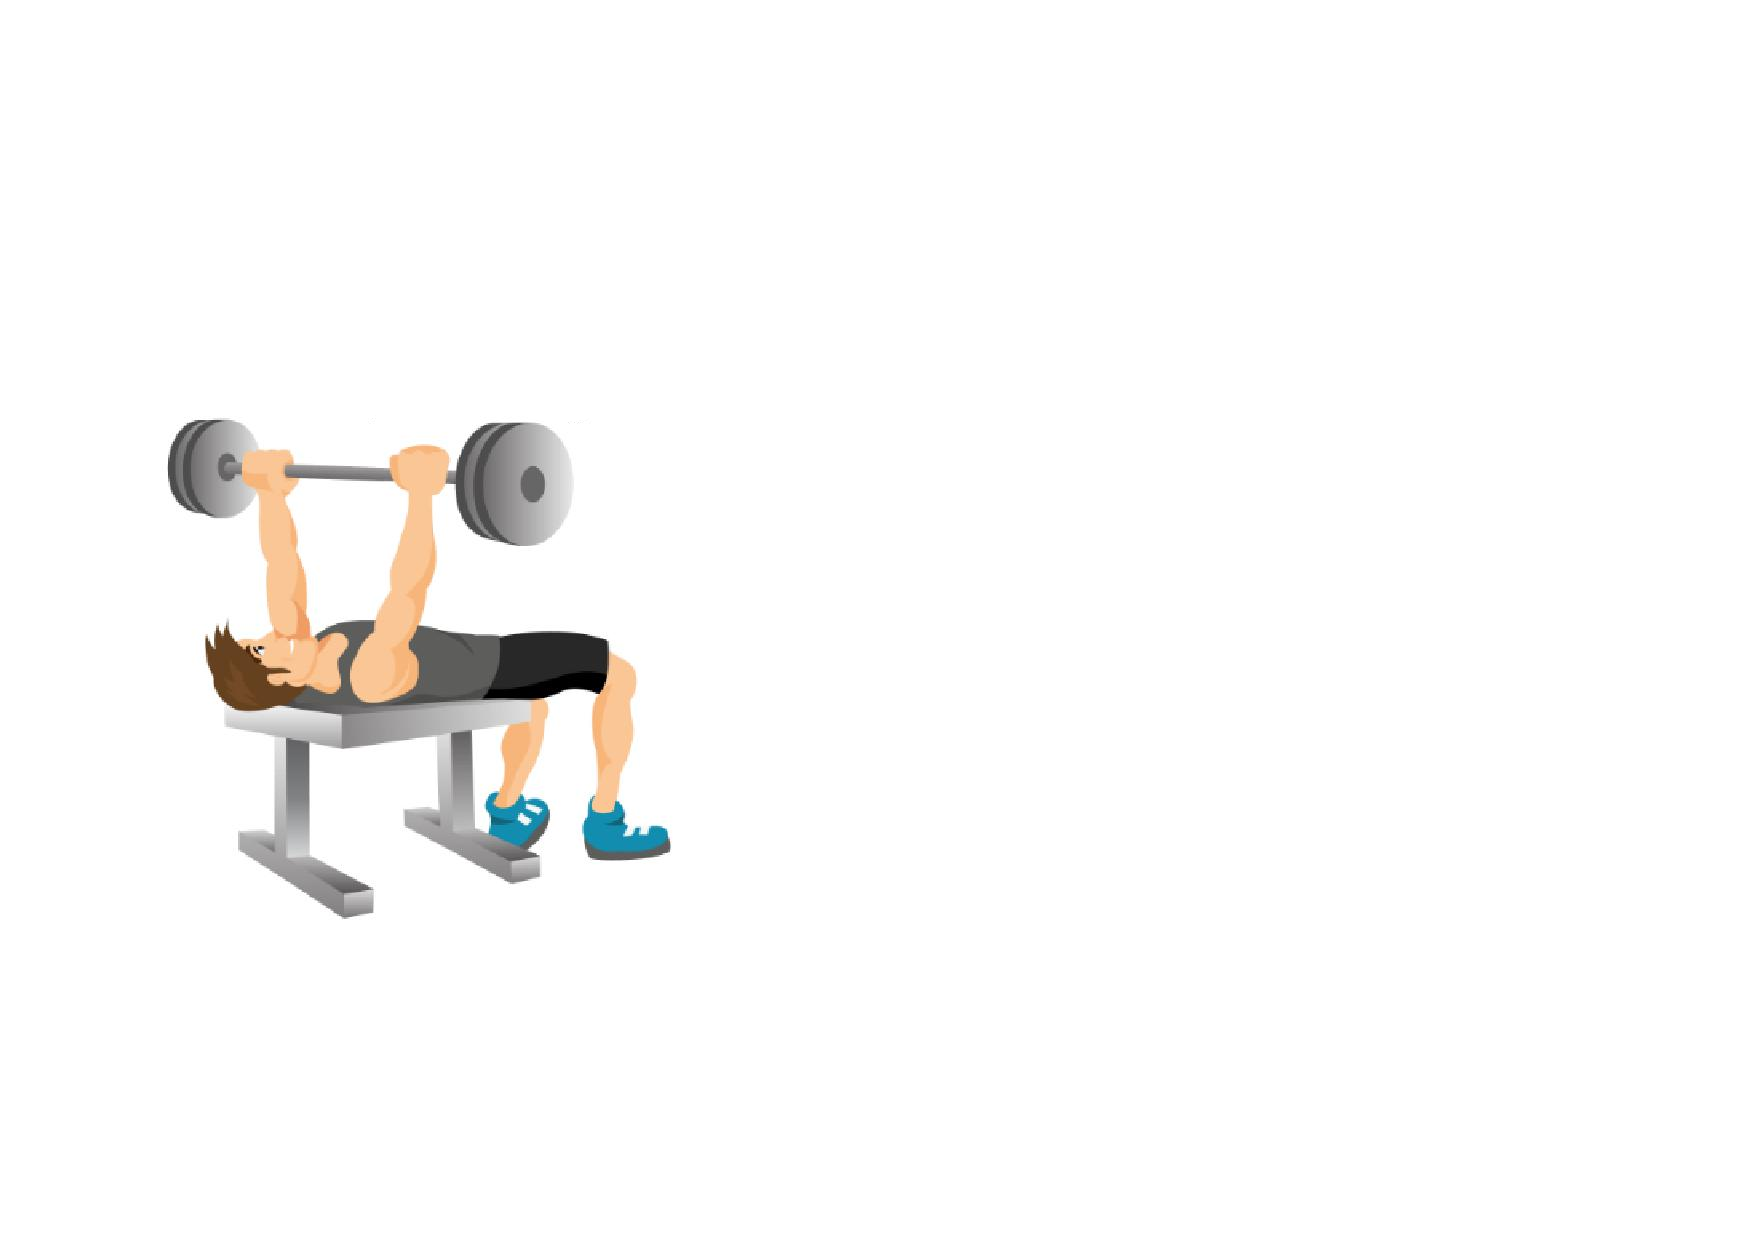 Dumbbells clipart weight bench. Gym fitness full workout